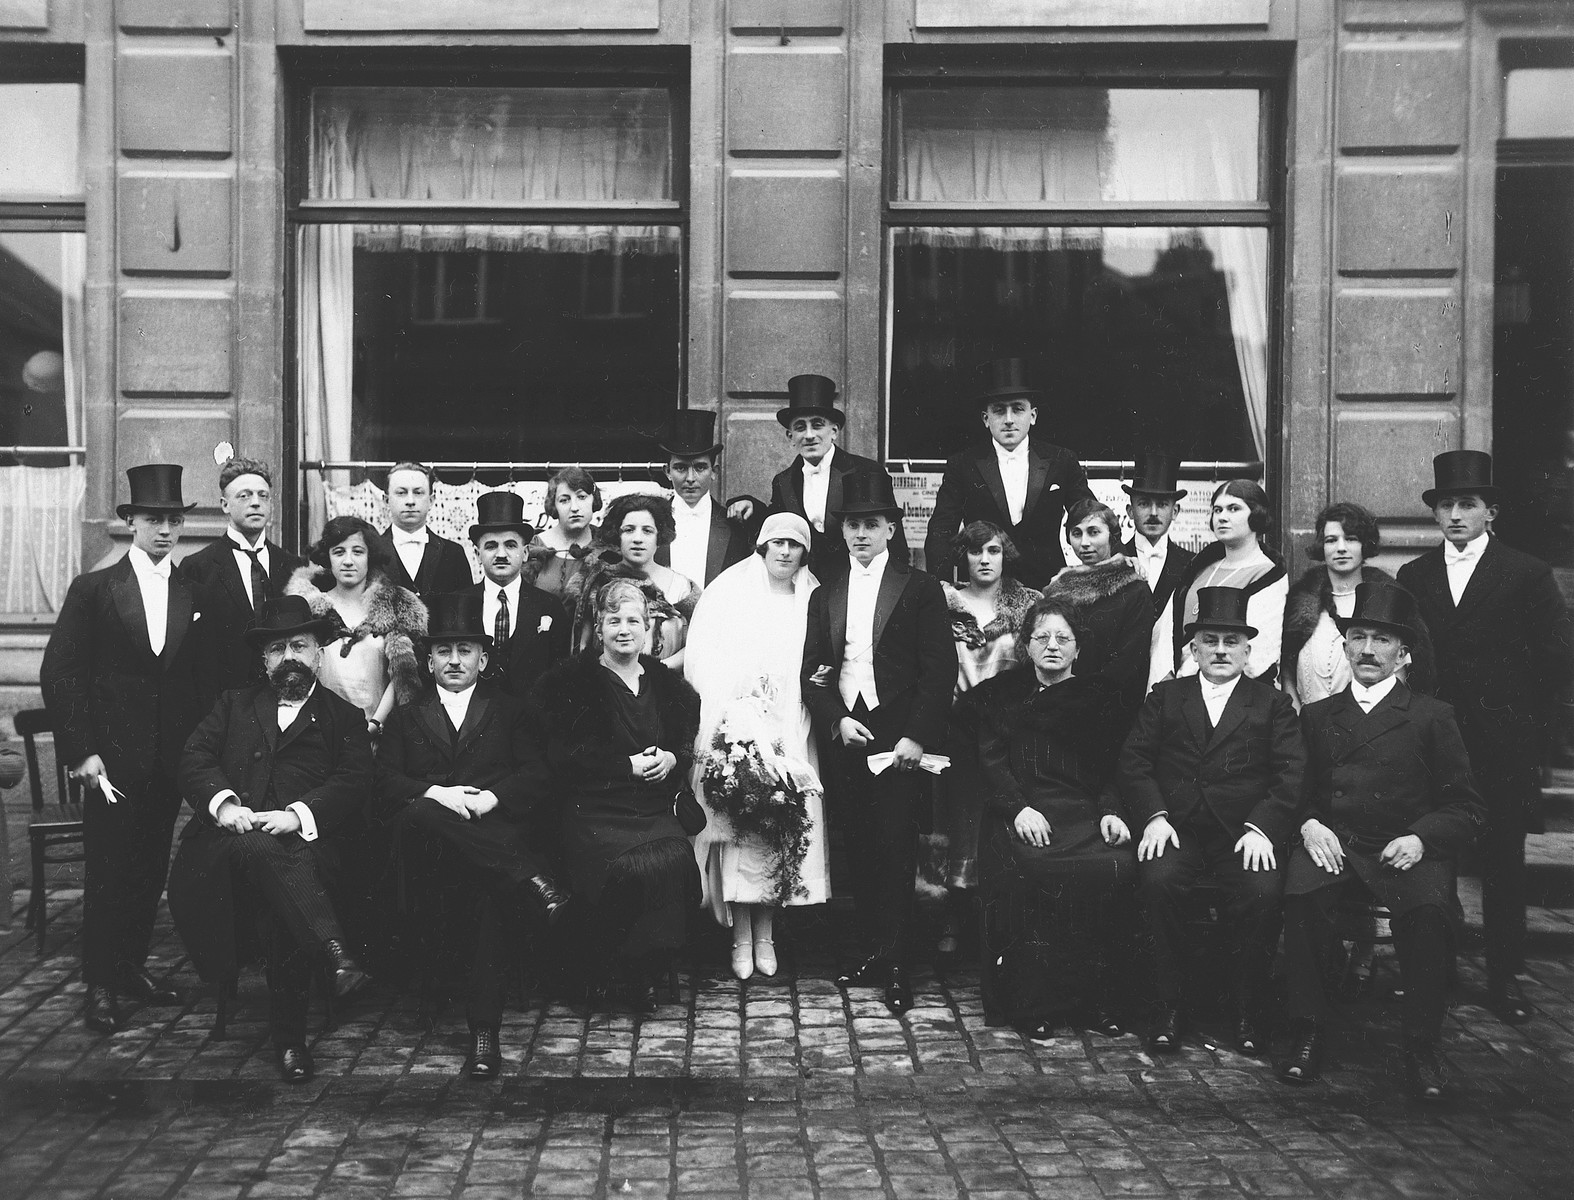 Group portrait of members of the Nussbaum wedding party at a Jewish marriage celebration in Luxembourg.